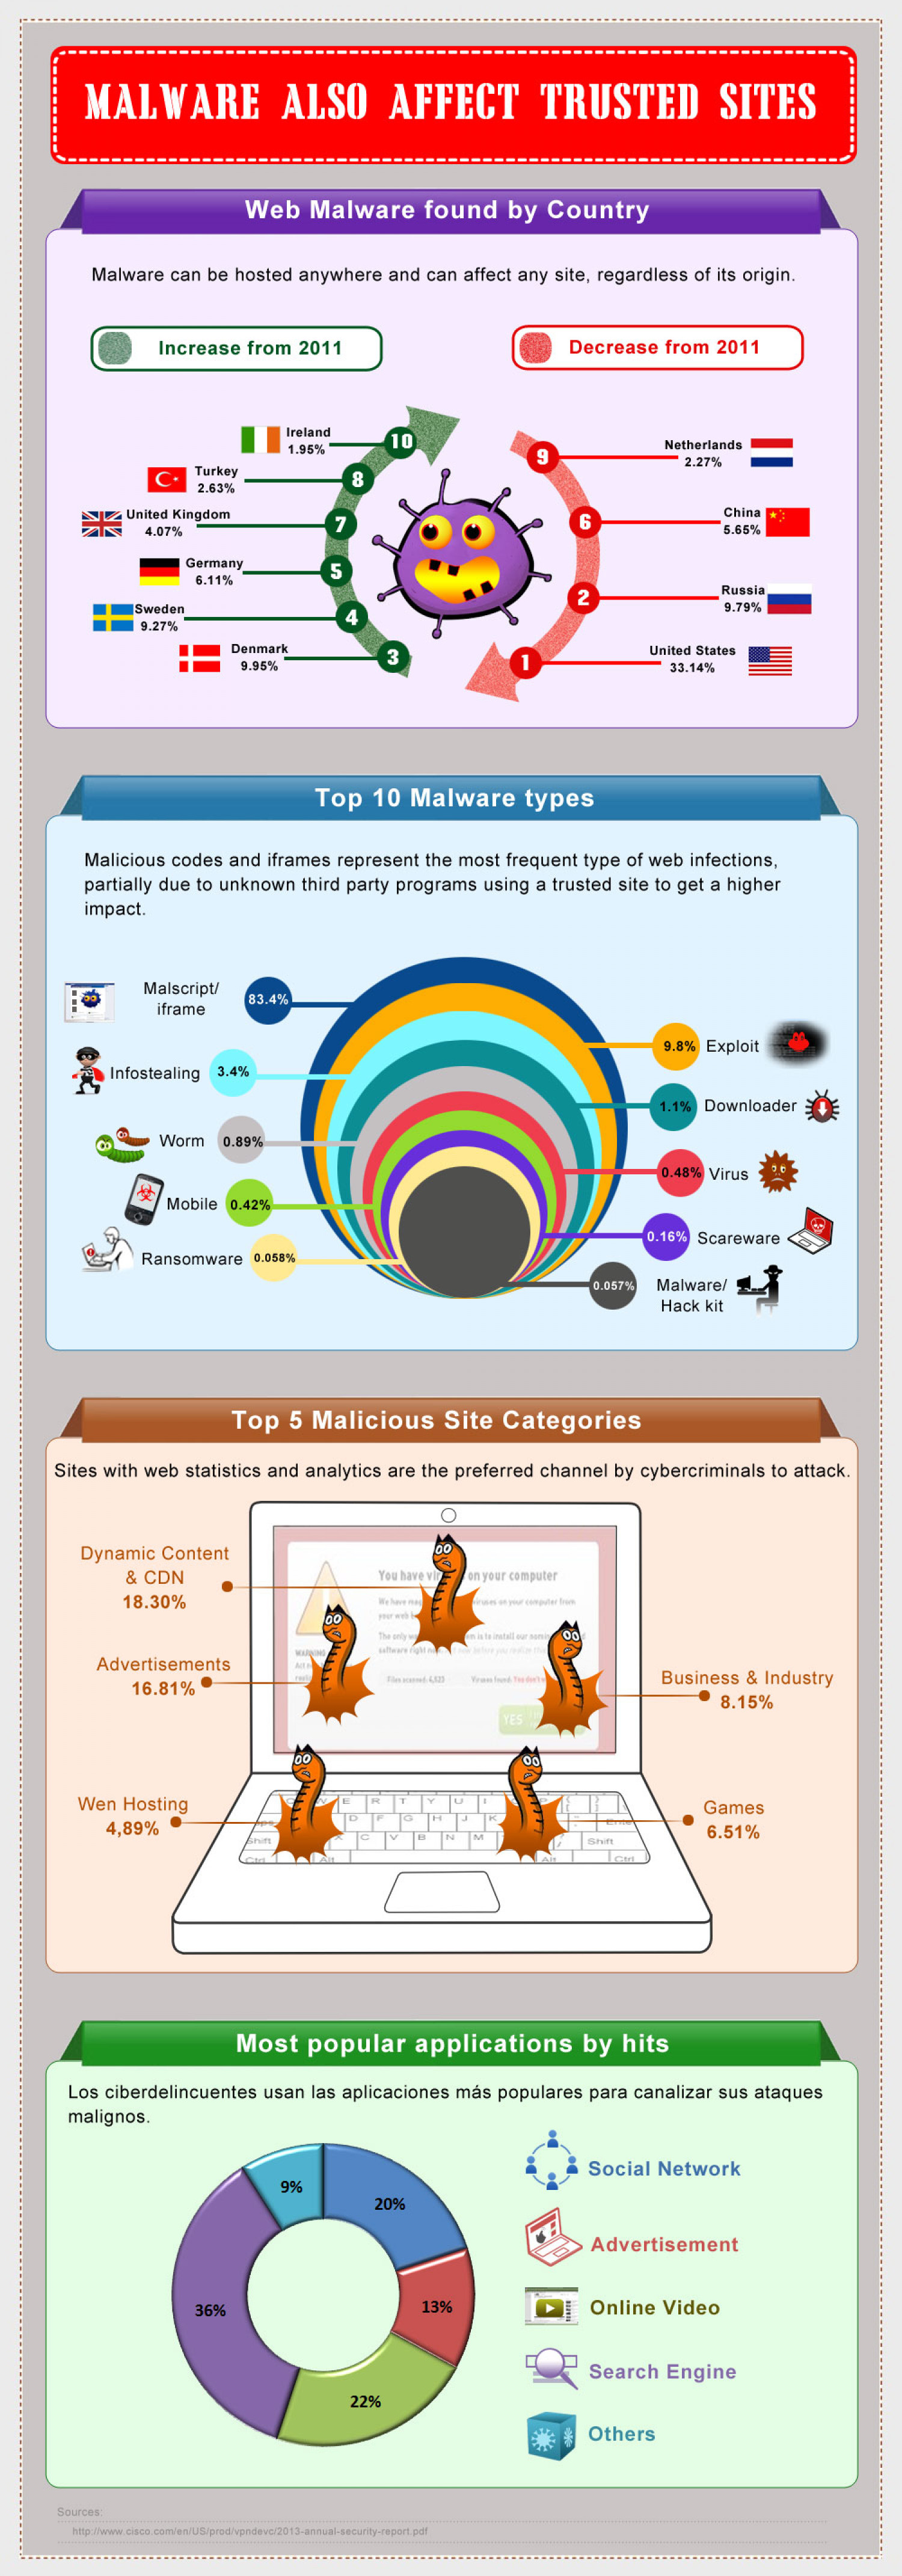 Malware effect the trusted site Infographic